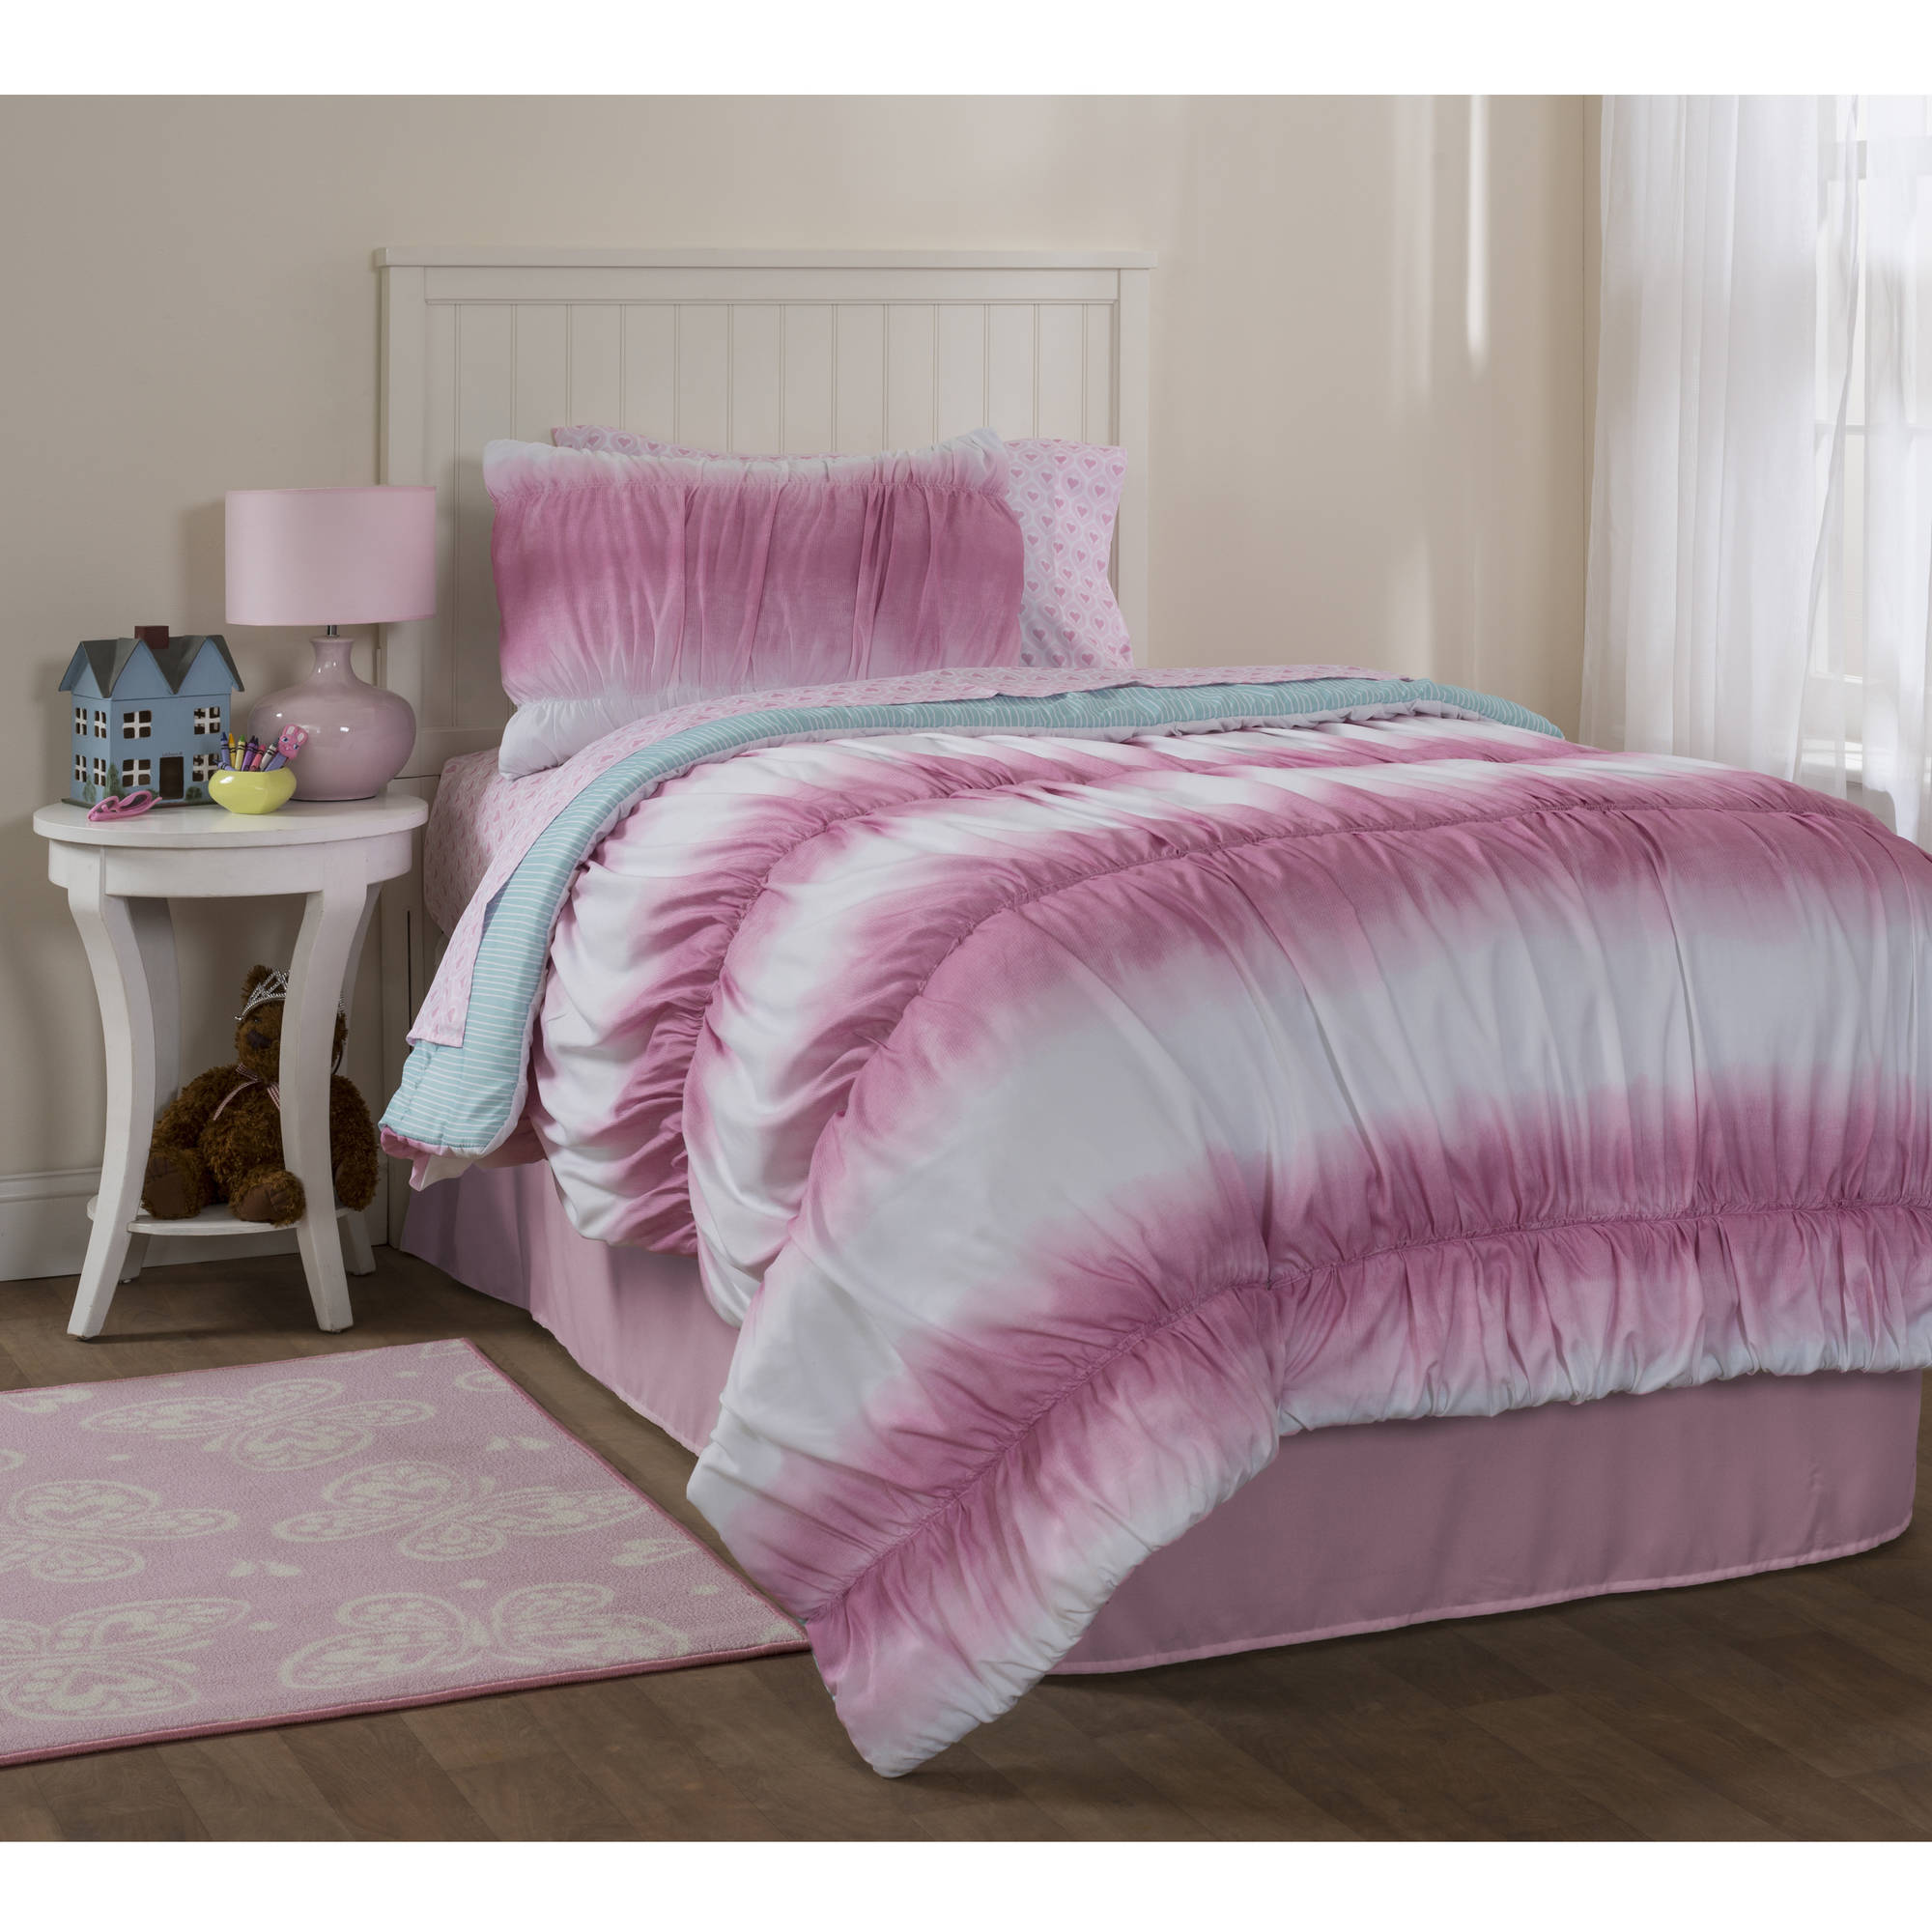 Mainstays Kids Ruched Tie Dye Bed in a Bag Bedding Set by Idea Nuova